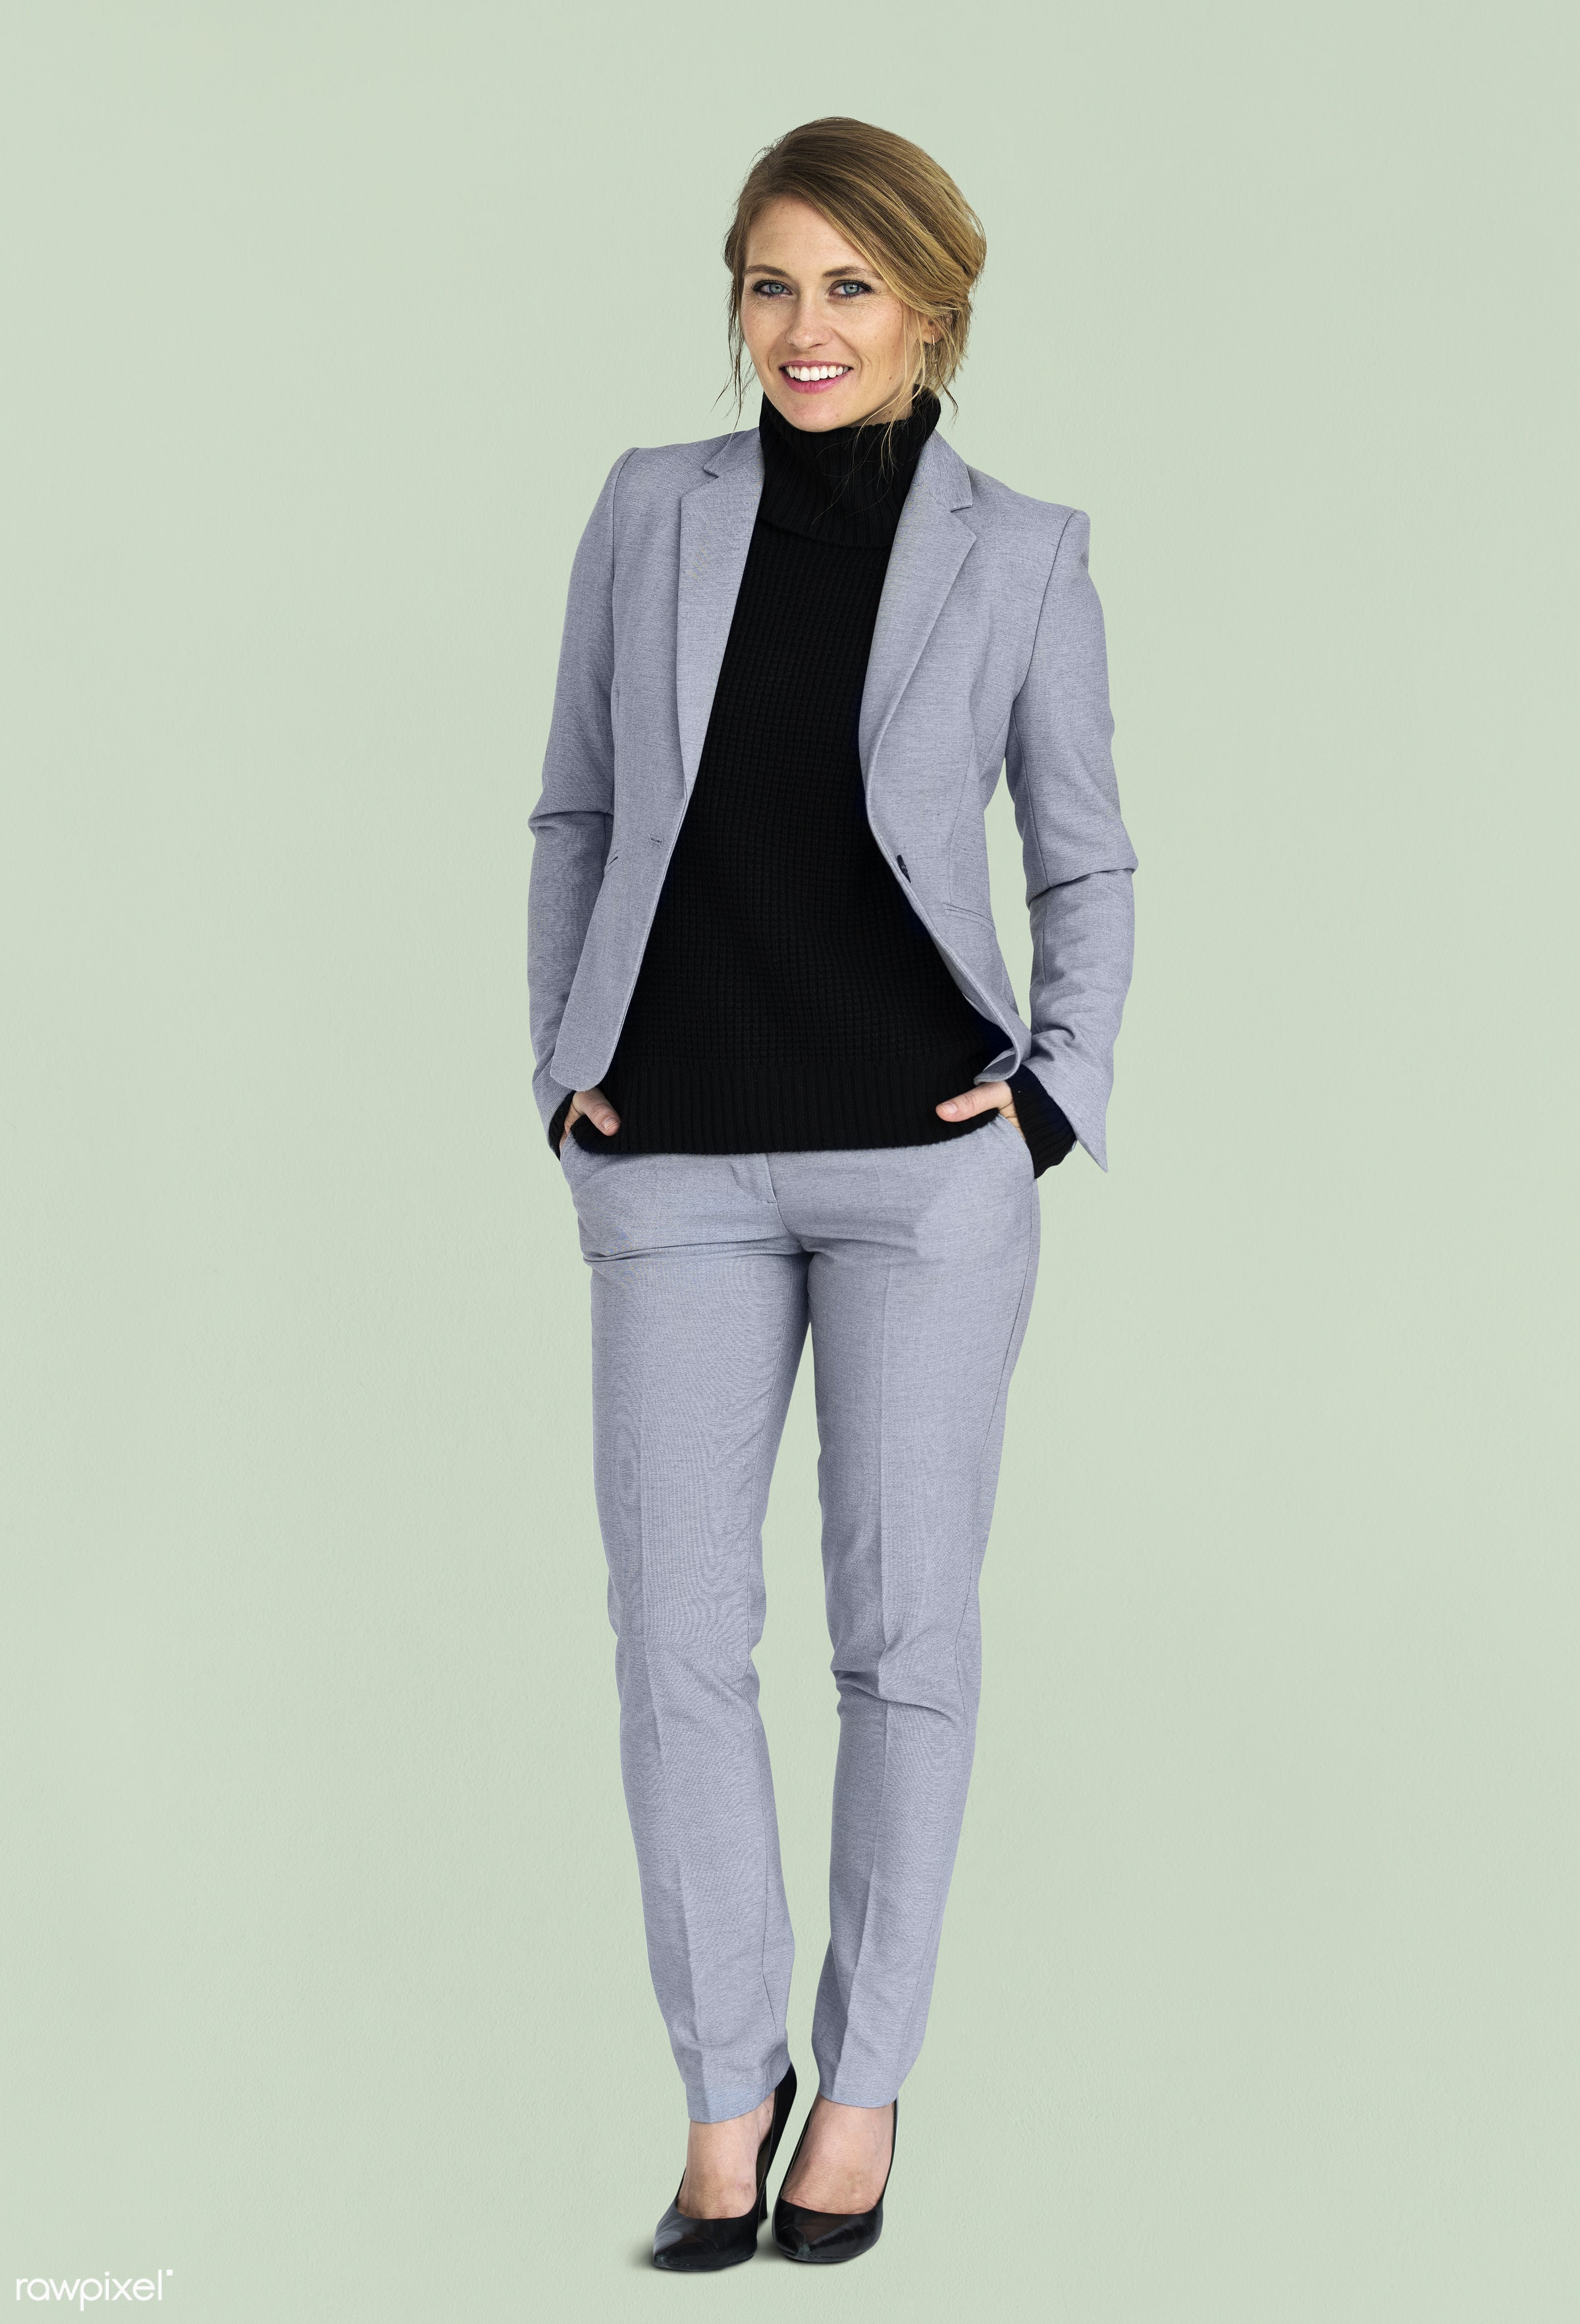 expression, studio, person, business wear, people, formal dressing, business, caucasian, girl, woman, happy, smile, cheerful...